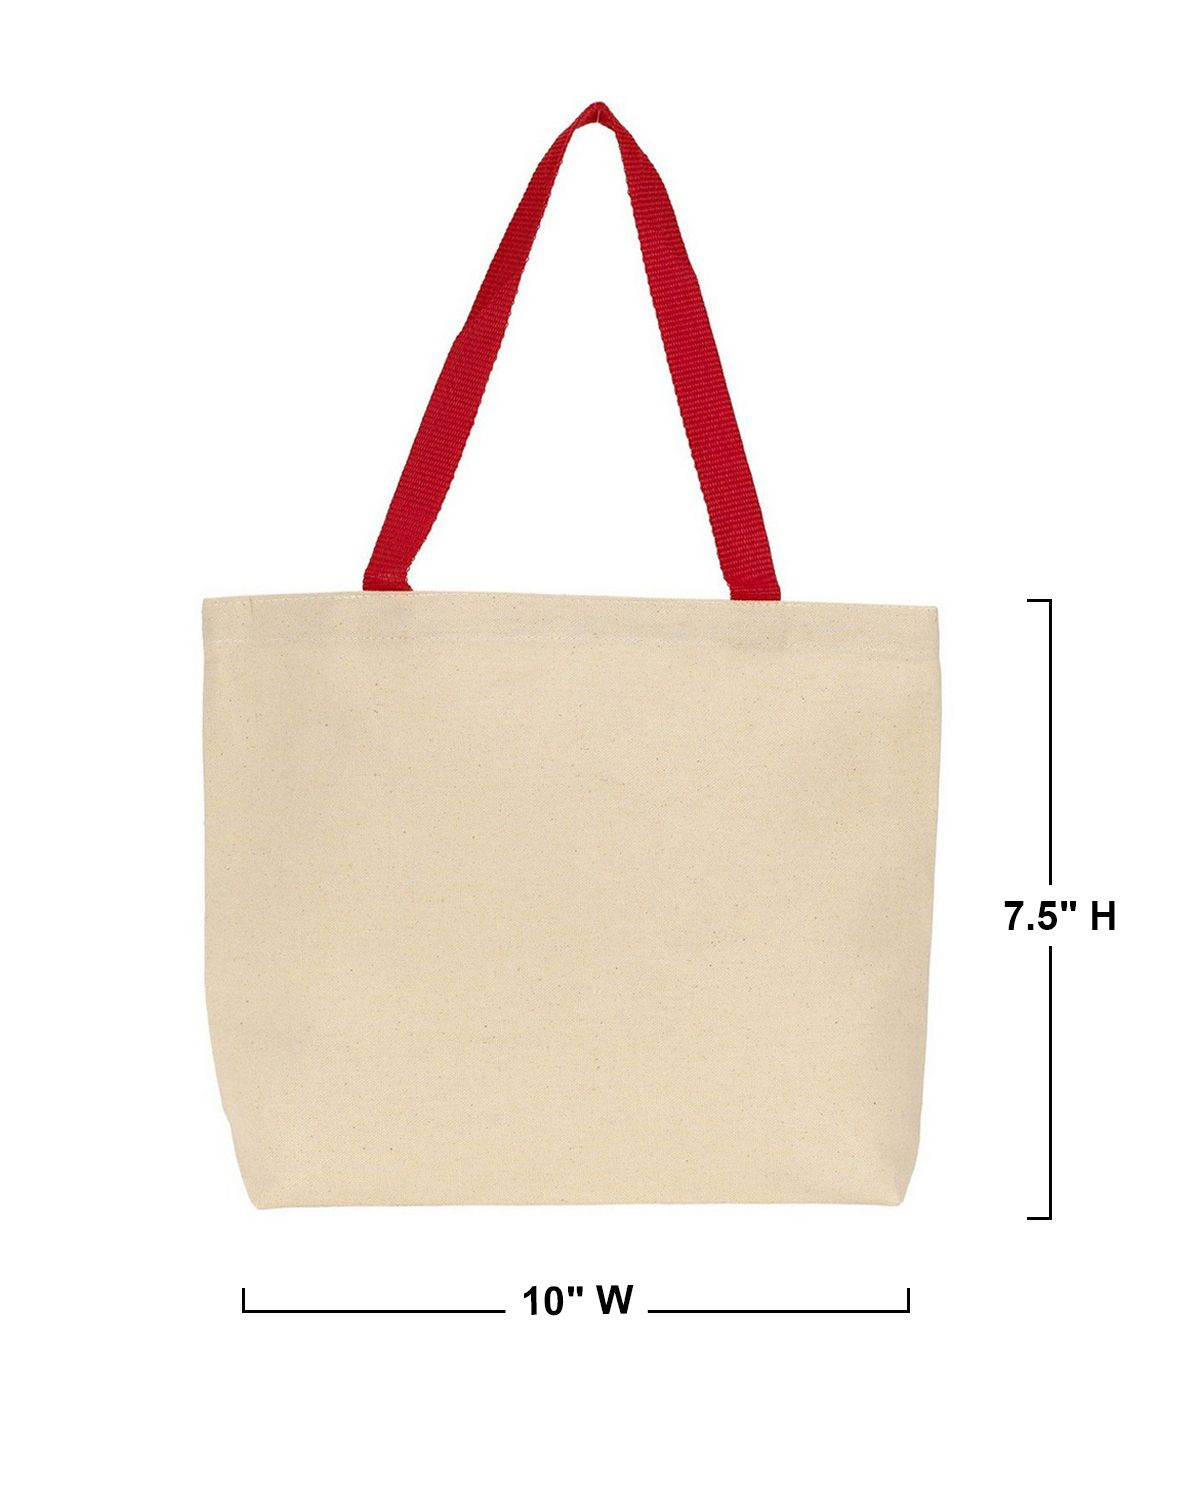 Gemline 220 Colored Handle Tote